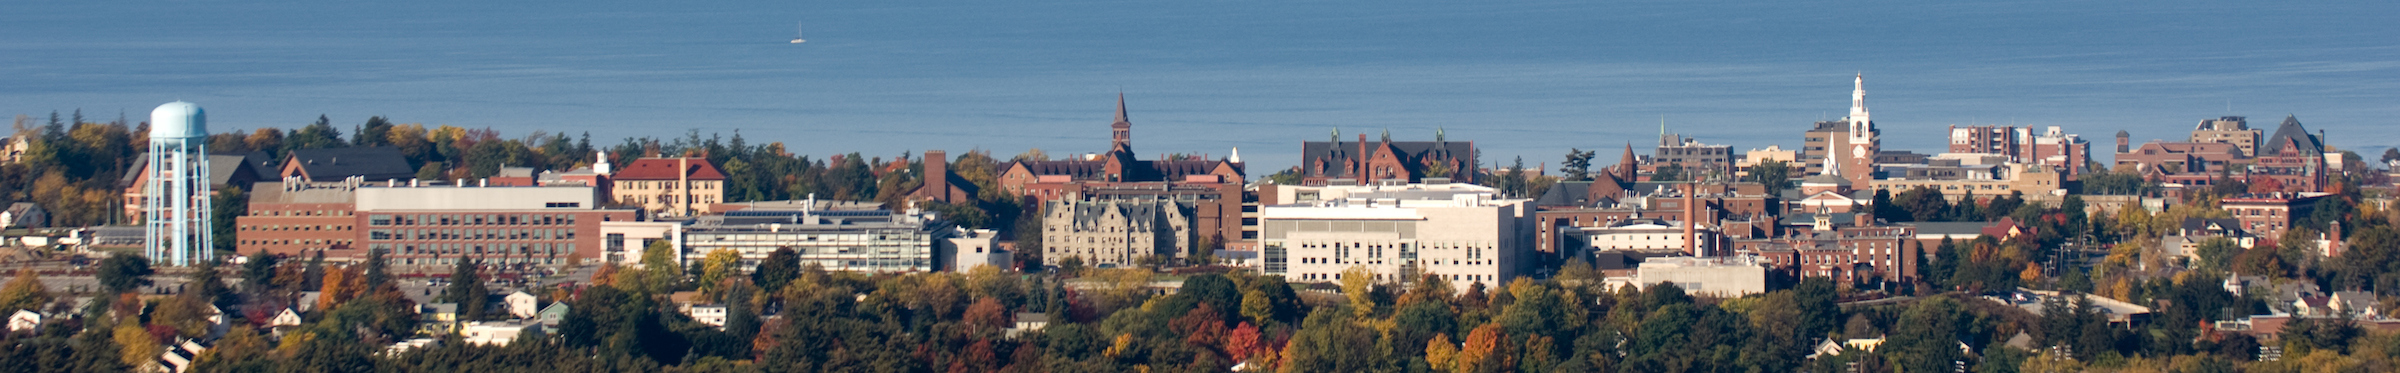 Panoramic_UVM